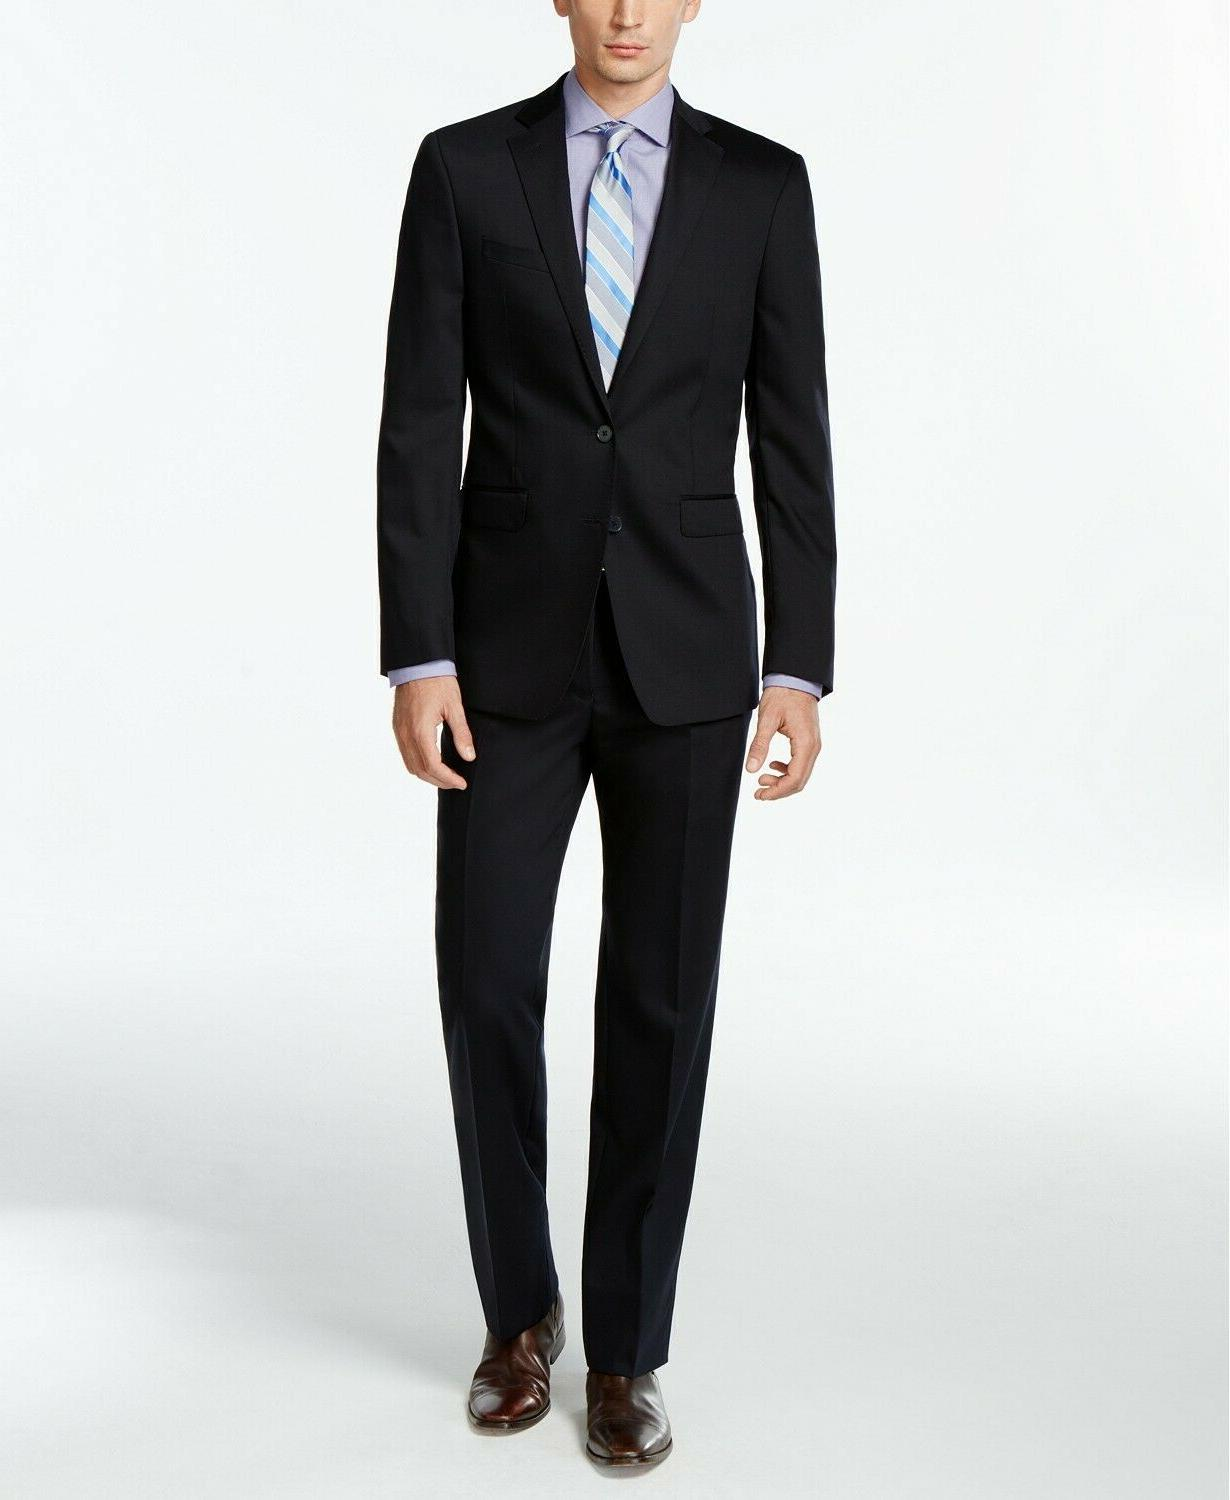 600 navy solid slim fit suit 42r